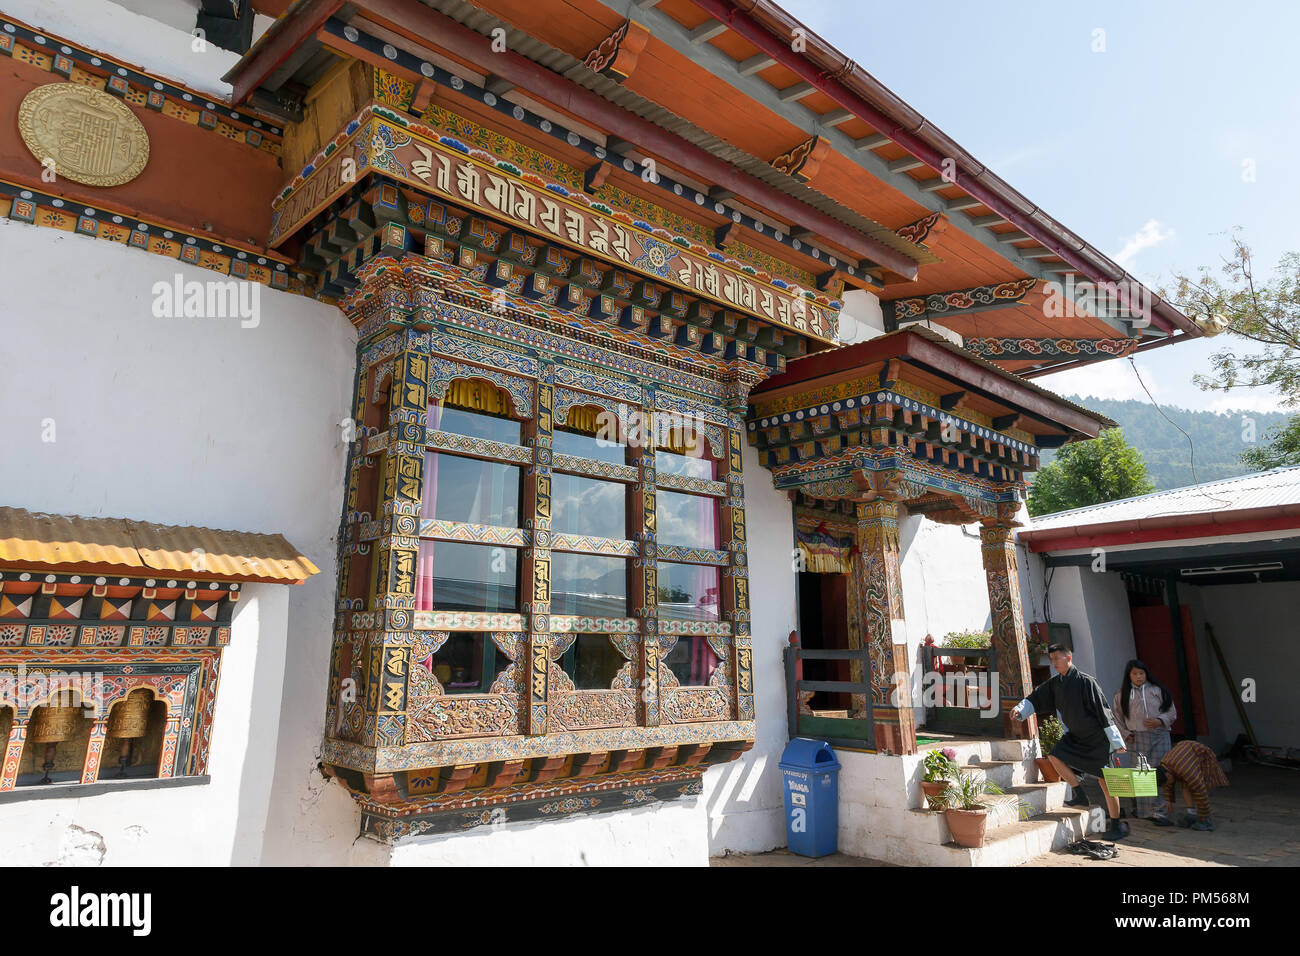 Chimi Lhakhang Temple, is also known as the temple of fertility. Bhutan. - Stock Image